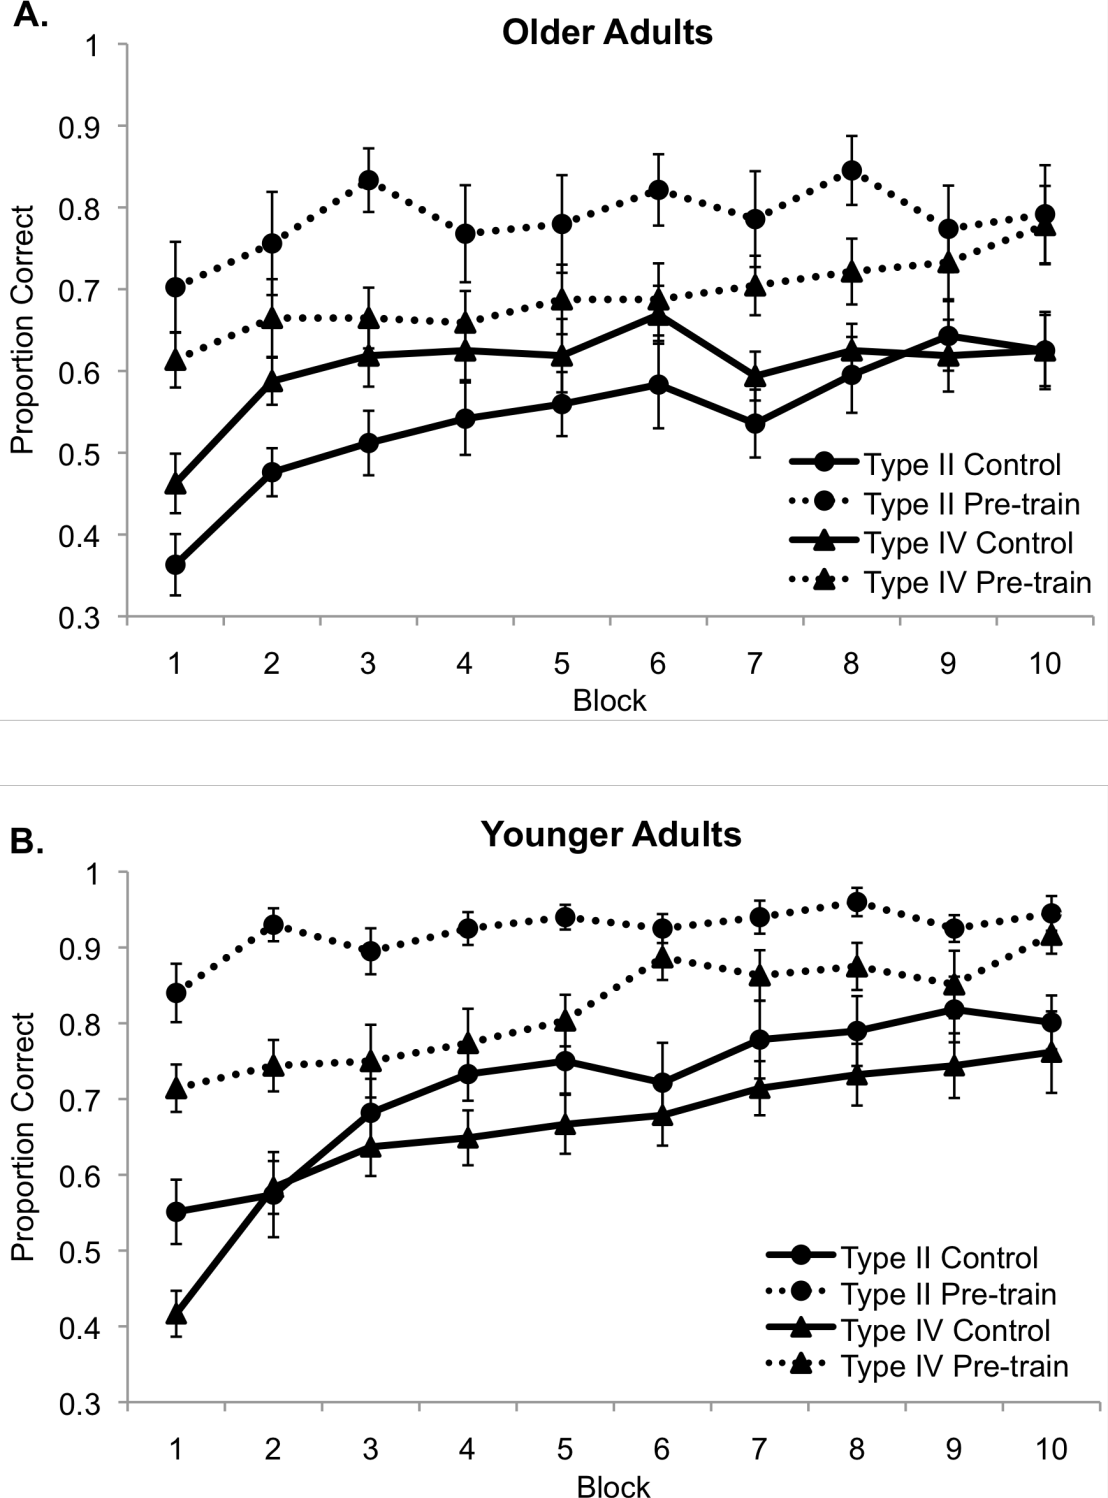 Figure 3.3: Categorization performance of (A.) younger and (B.) older adults across learning blocks in each of the four conditions. Error bars denote standard error of the mean.